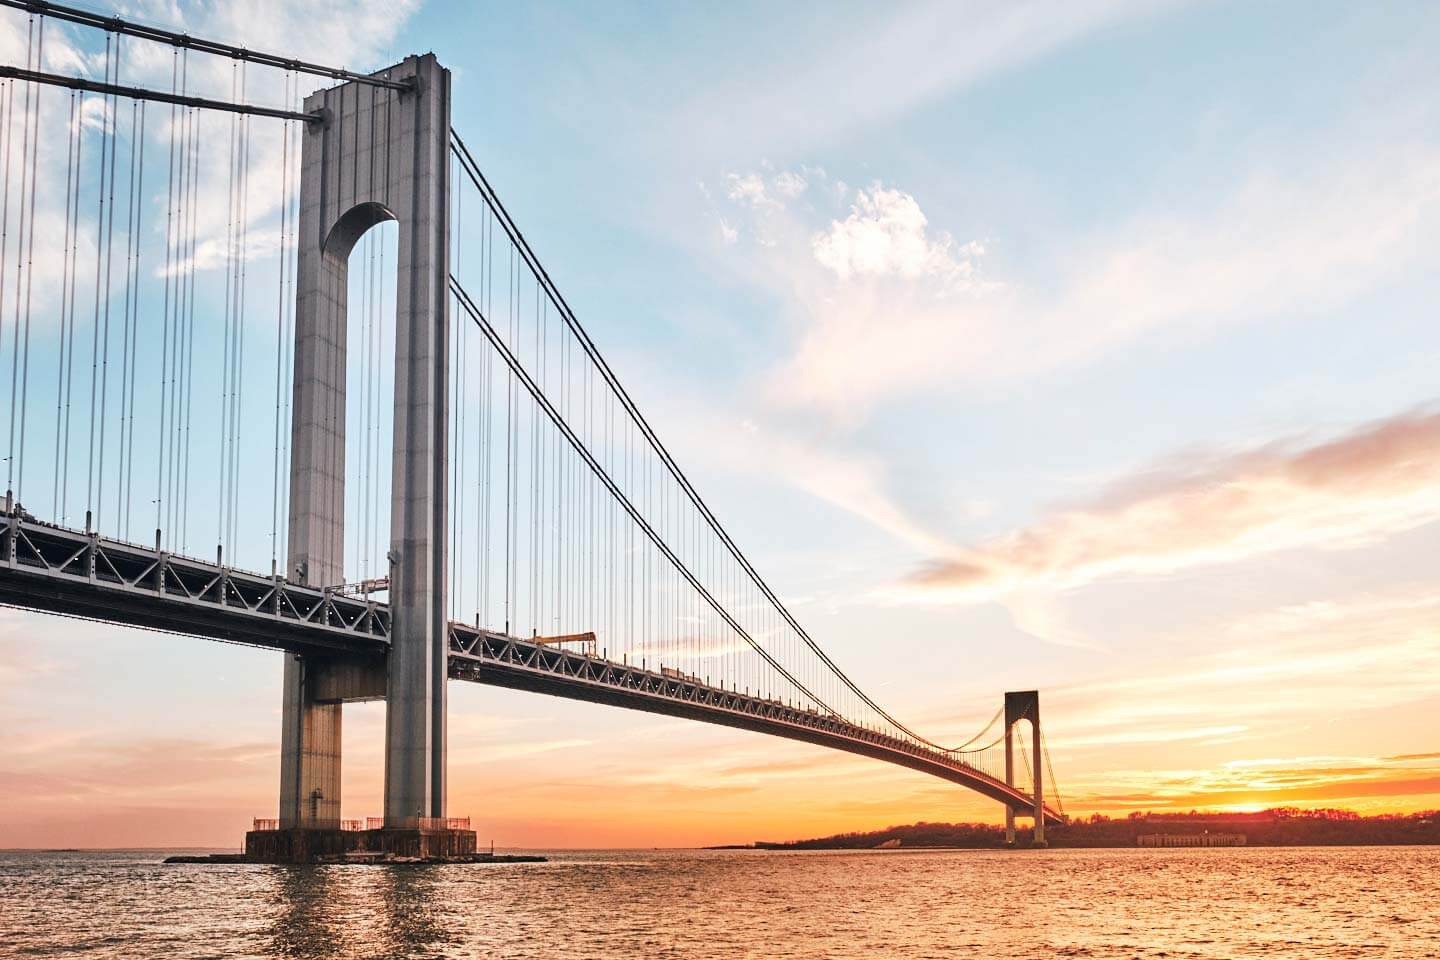 New York Verrazano Bridge Travel Photographer Marcus Lewis web-40-percent-tinypng